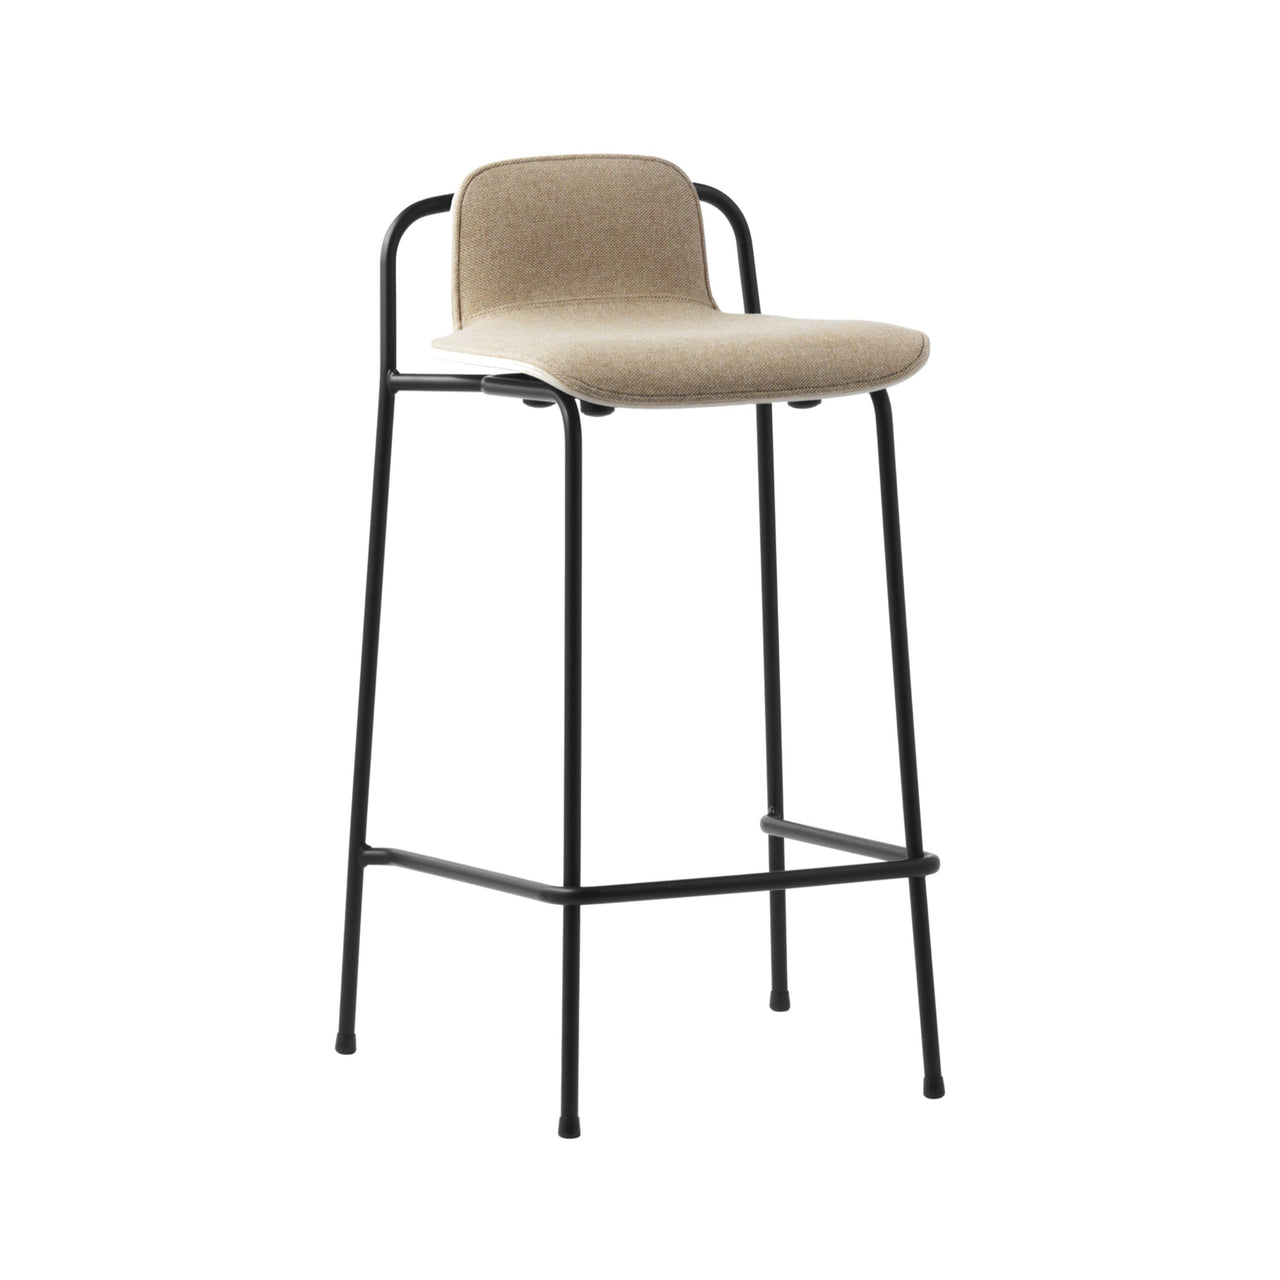 Studio Bar + Counter Stool: Front Upholstered + Counter (65cm) + Oak Shell